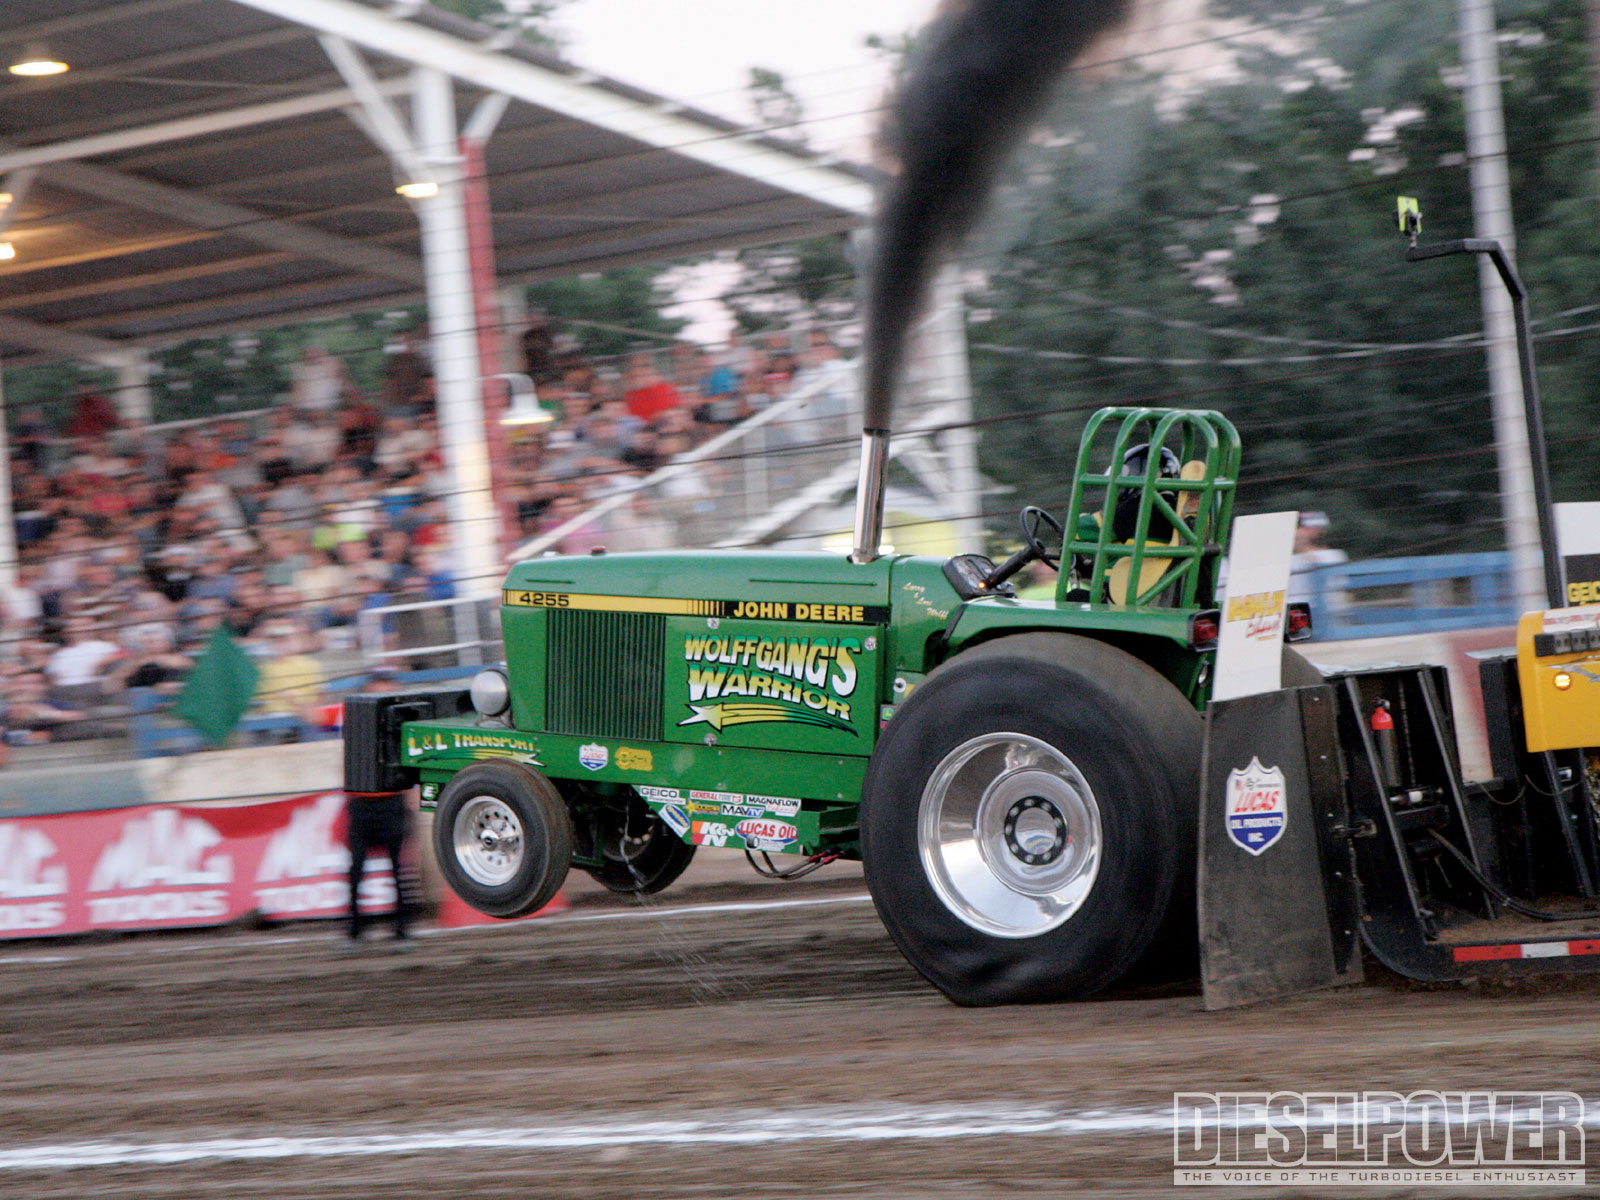 Tractor Pulling Tractor : Action packed john deere tractor pull photos